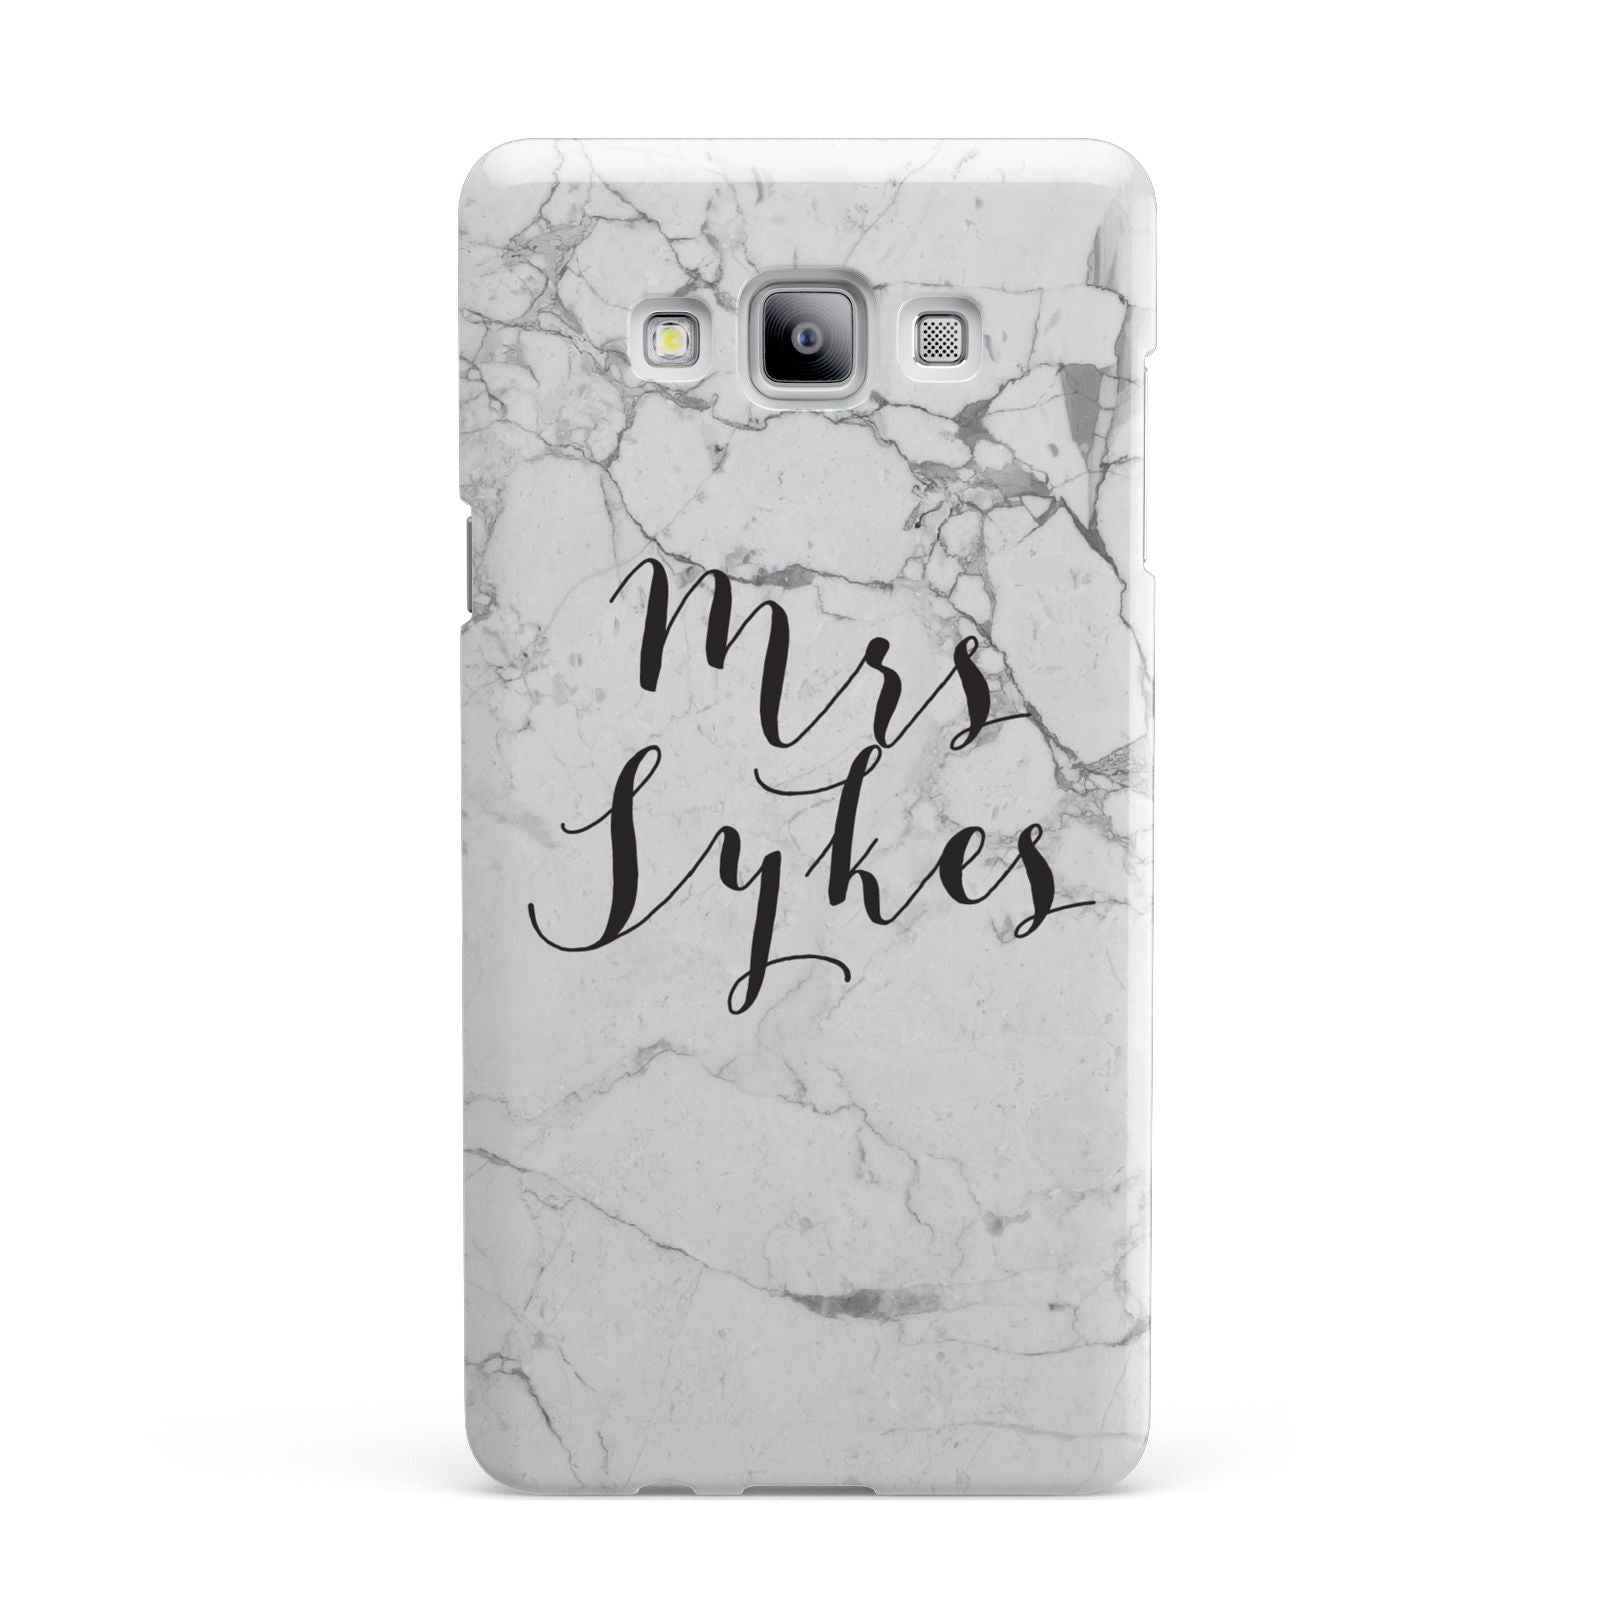 Surname Personalised Marble Samsung Galaxy A7 2015 Case